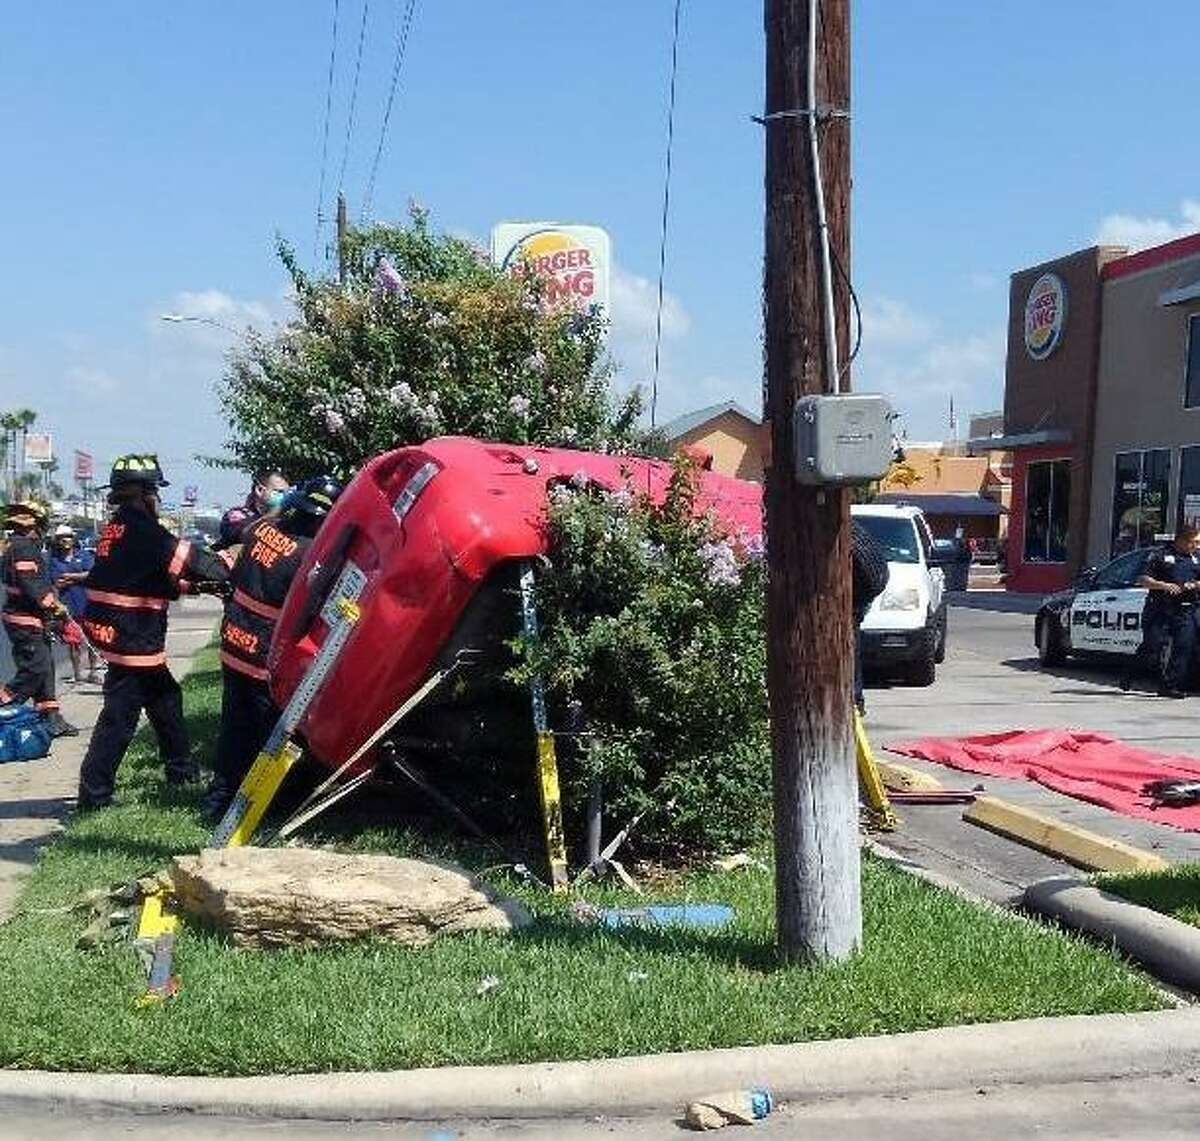 A woman in her 90s was injured in this rollover crash reported Tuesday in the 4600 block of San Bernardo Avenue. She was taken to the Laredo Medical Center in serious condition.